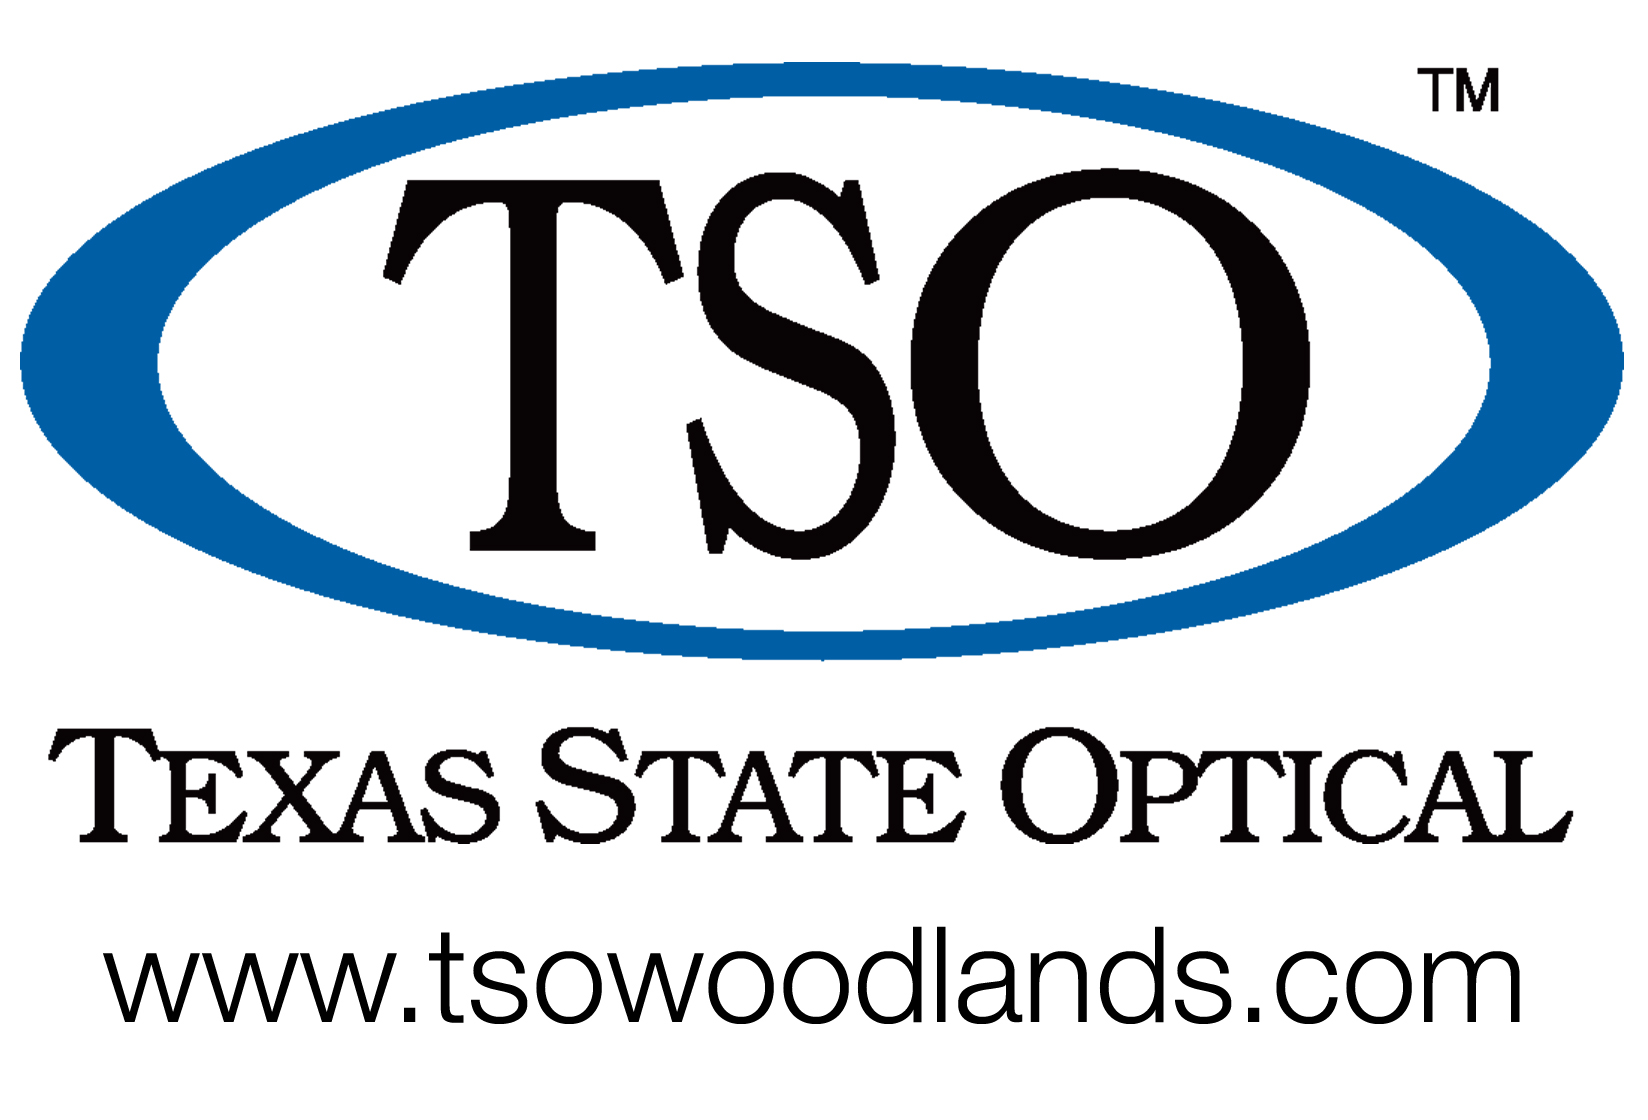 Texas State Optical (TSO) Woodlands